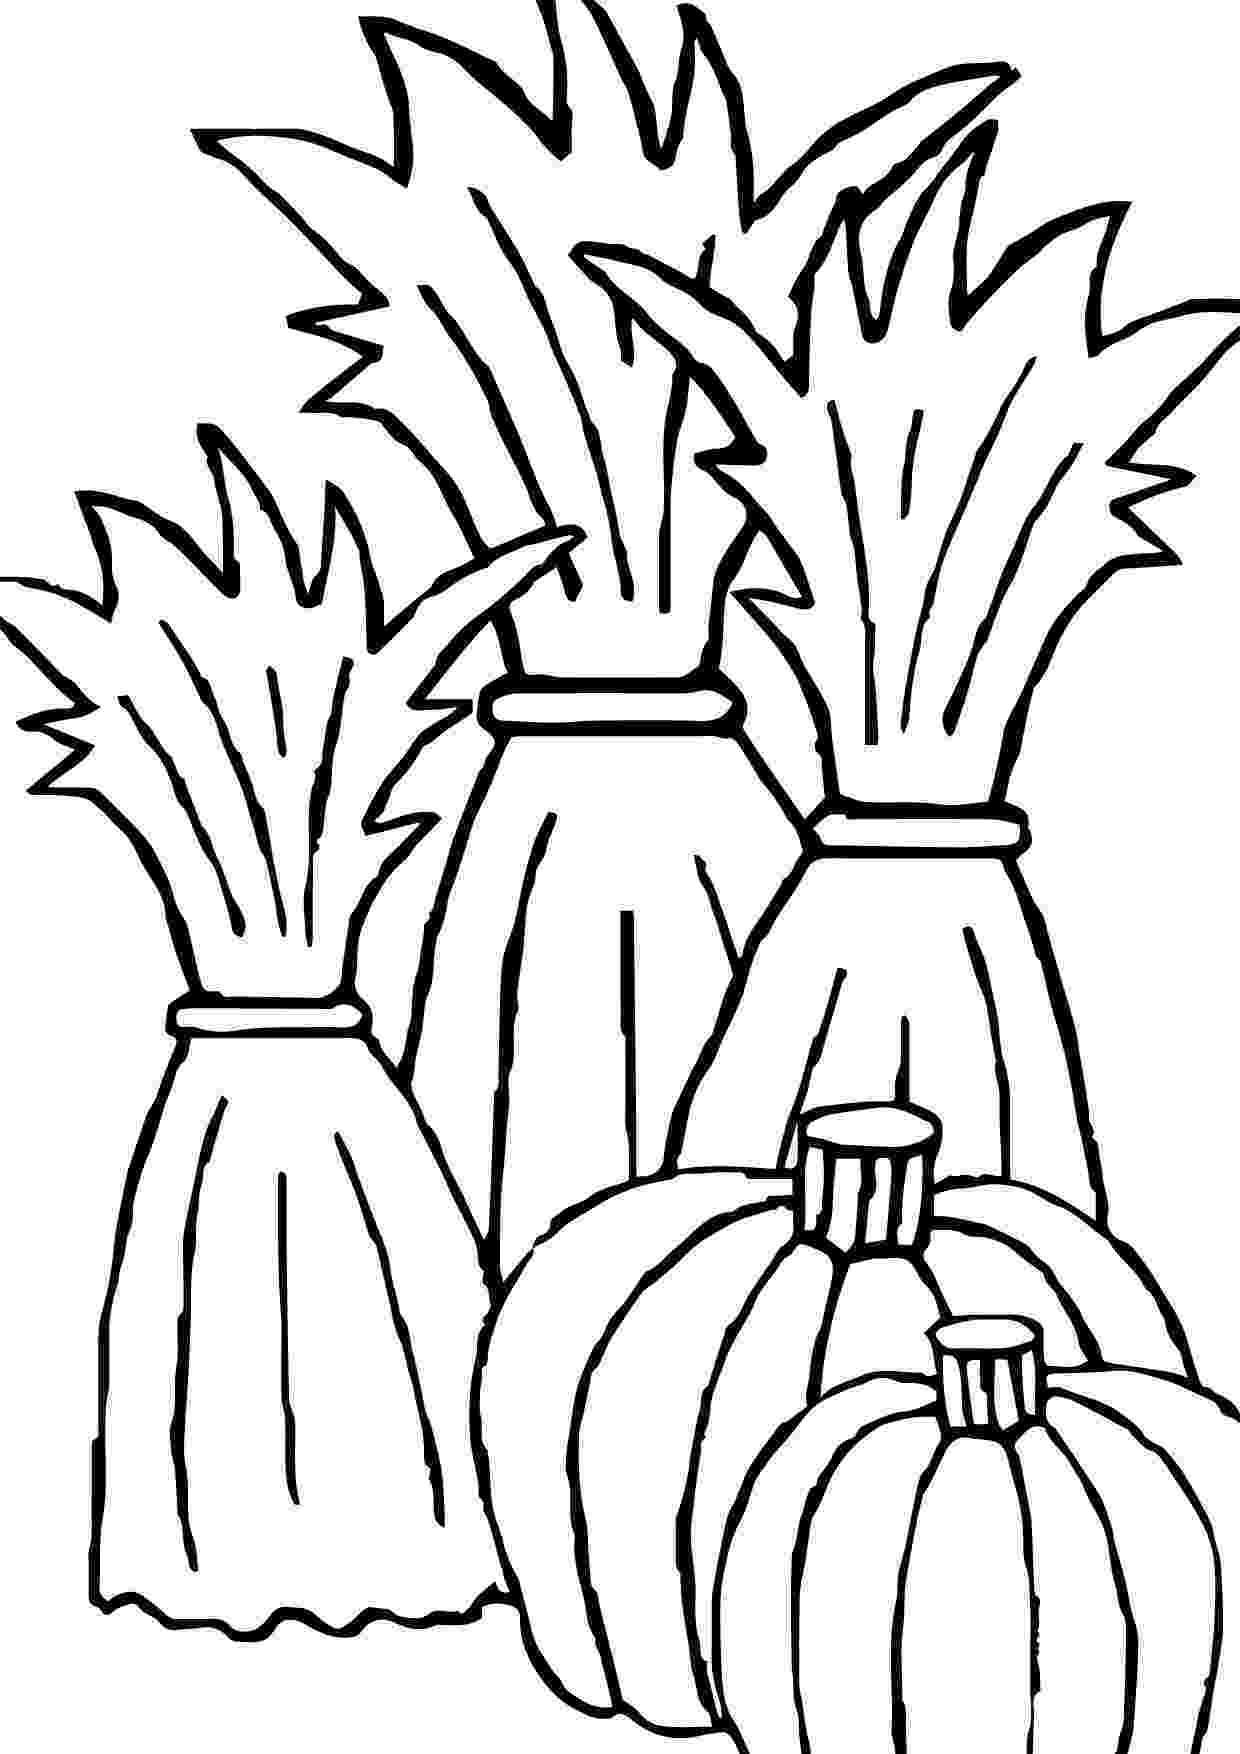 corn stalk coloring page awesome corn stalk coloring page 08 09 2015081307 coloring stalk page corn